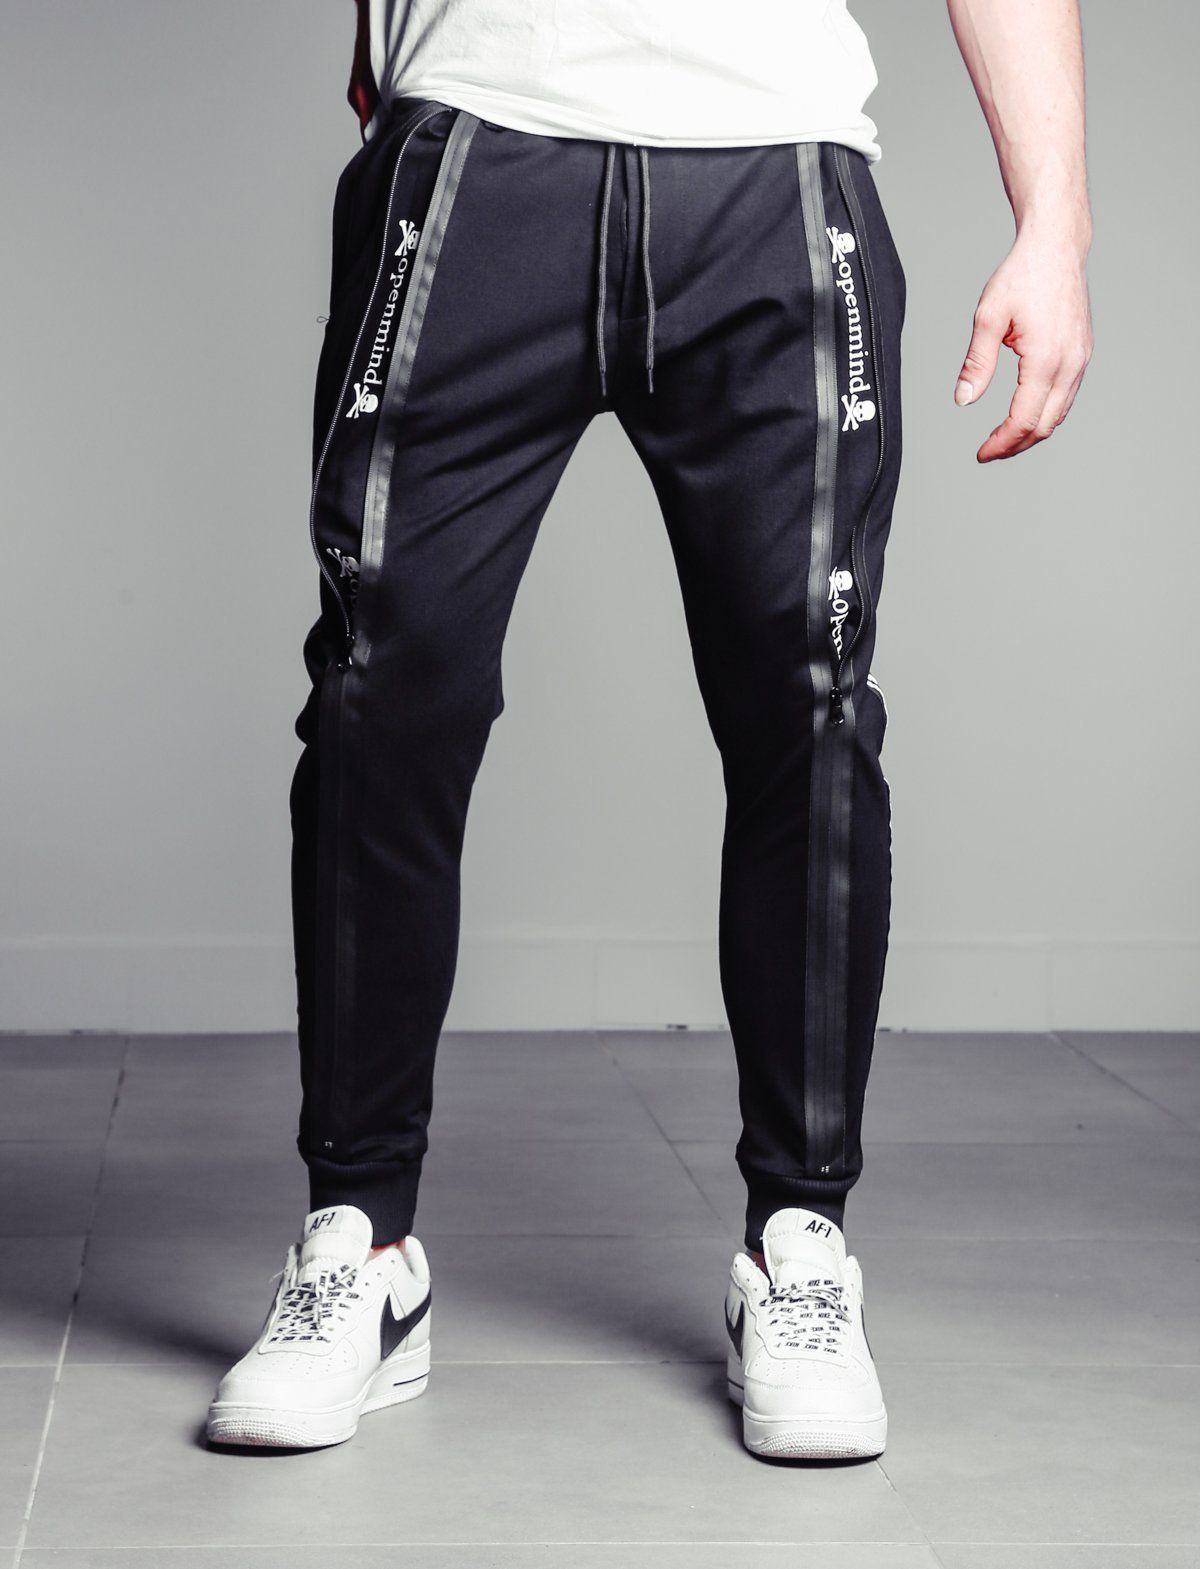 X-Future Mens Plus Size Casual Printing Athletic Contrast Jogger Pants Sweatpants Trousers